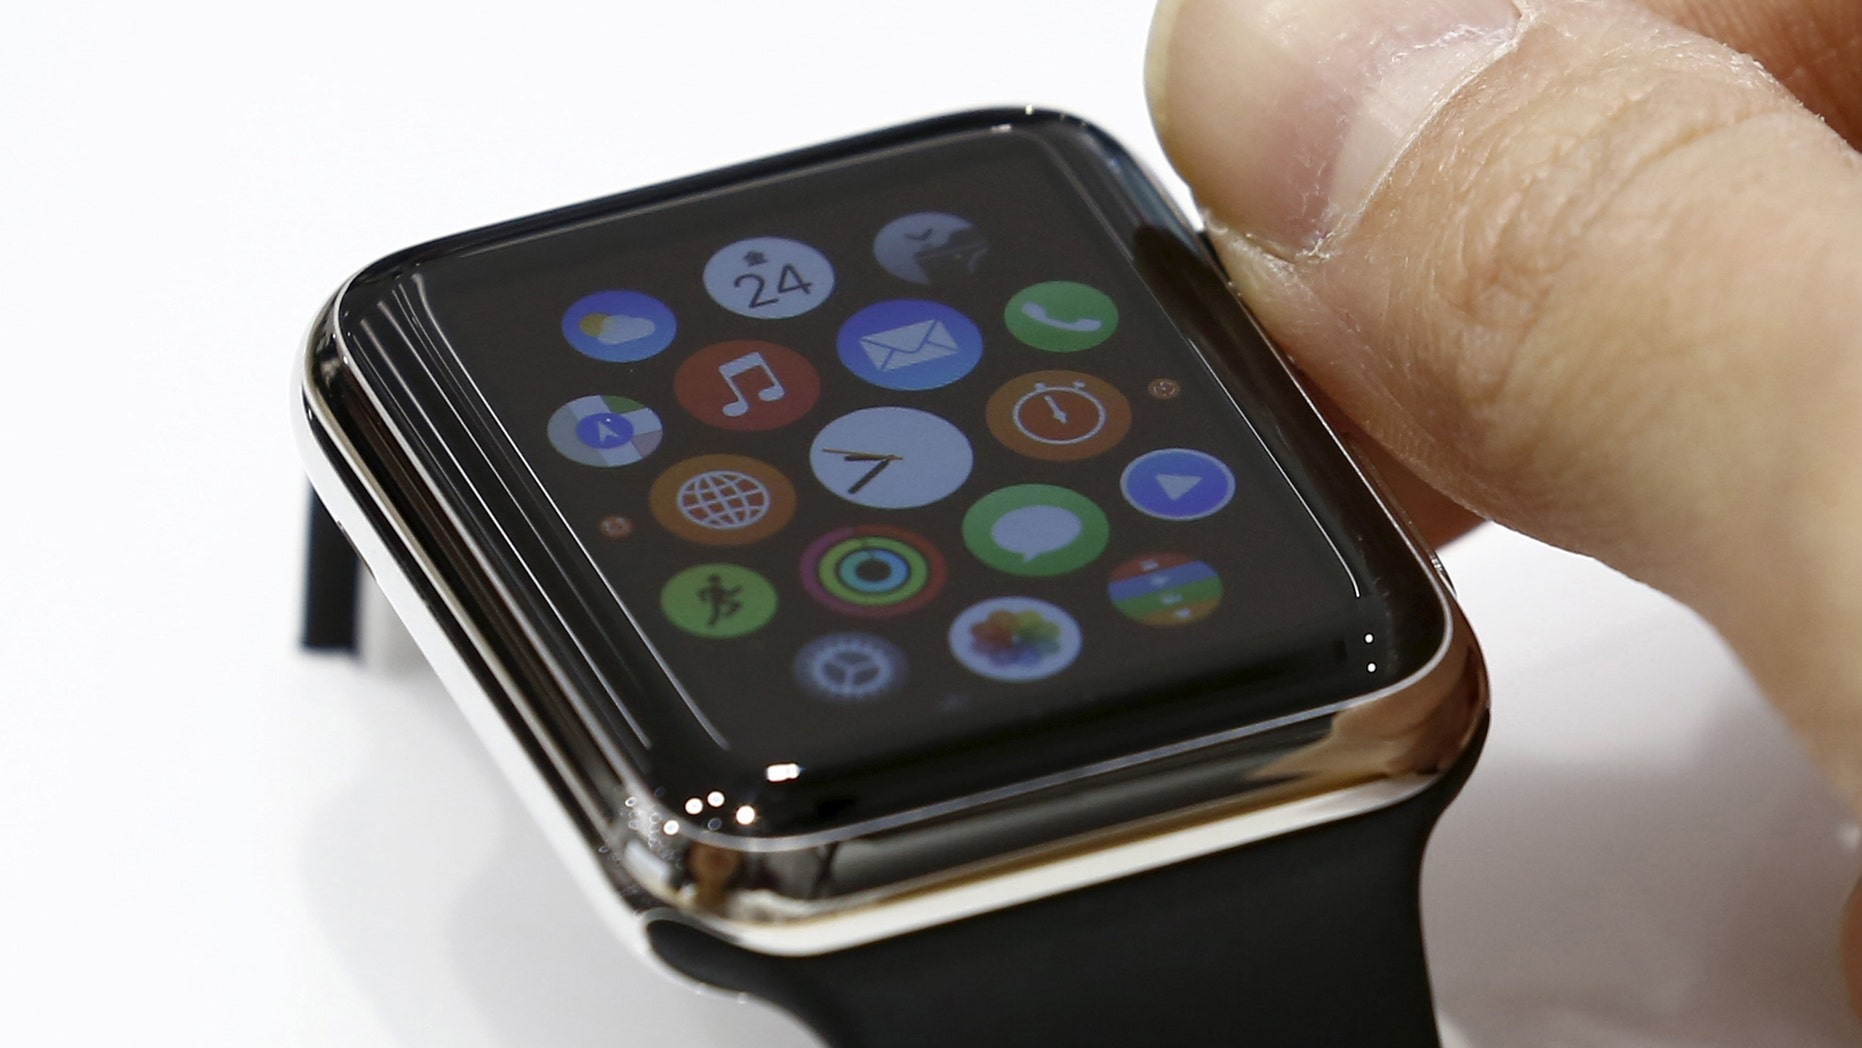 File photo - A woman uses Apple Watch that is on display at an electronics store in Omotasando in Tokyo April 24, 2015.